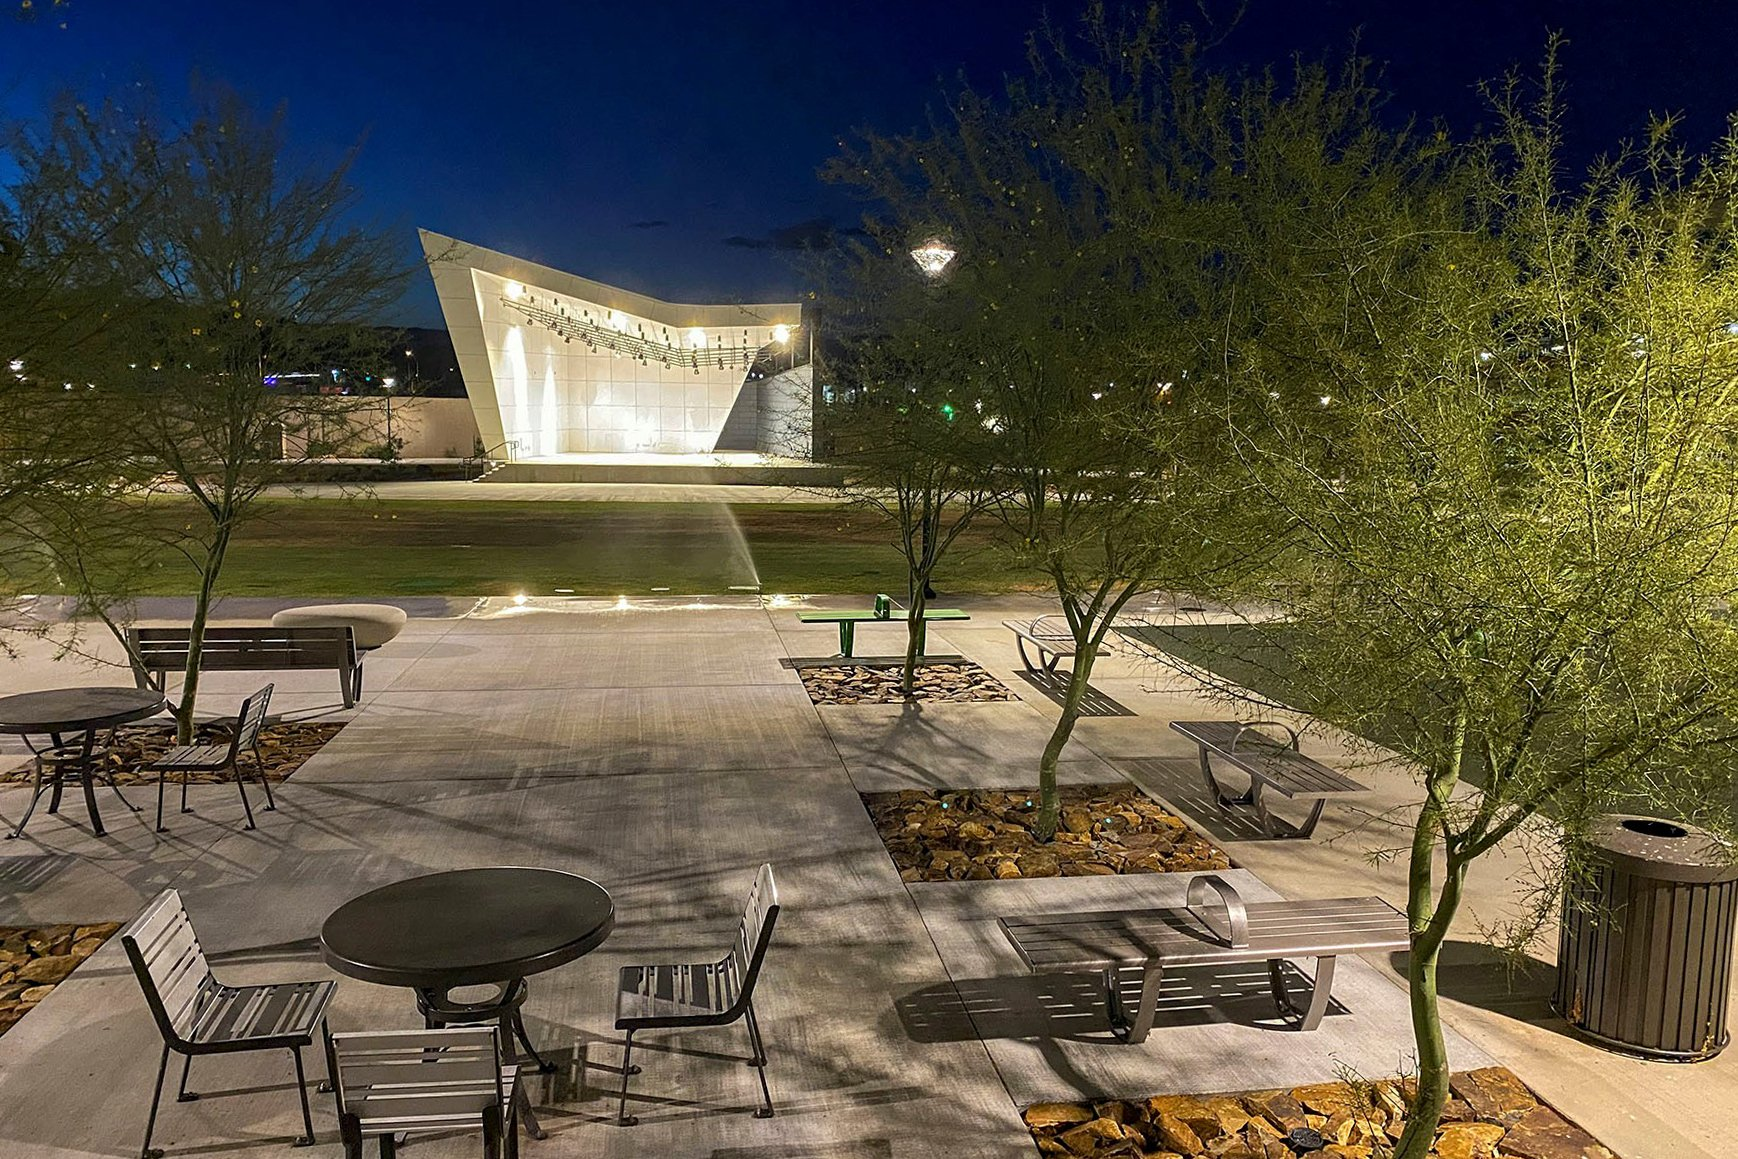 Cathedral City Community Amphitheater